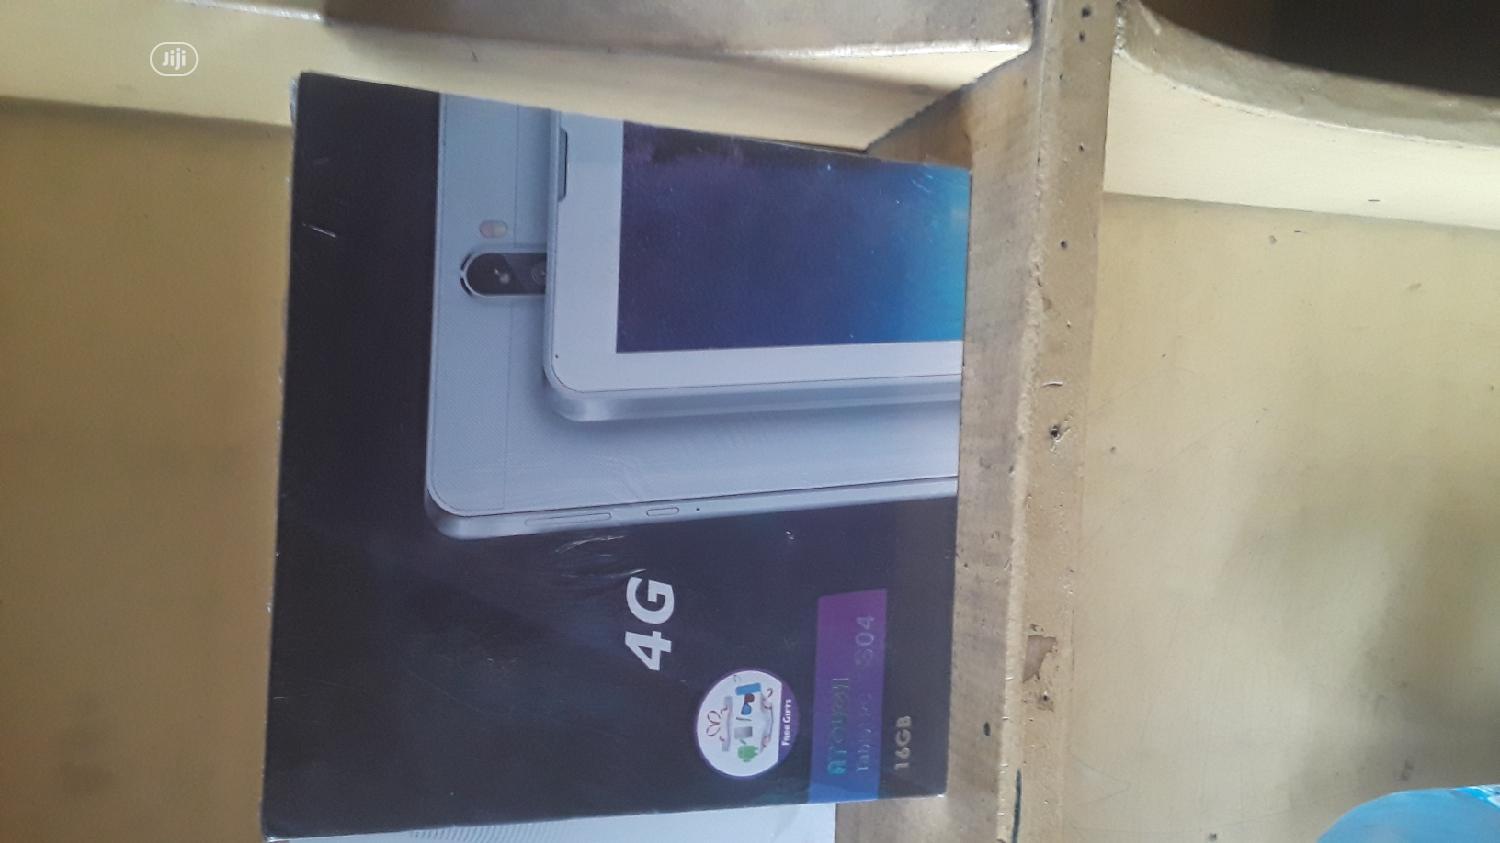 New Atouch S04 16 GB Silver | Tablets for sale in Lekki, Lagos State, Nigeria